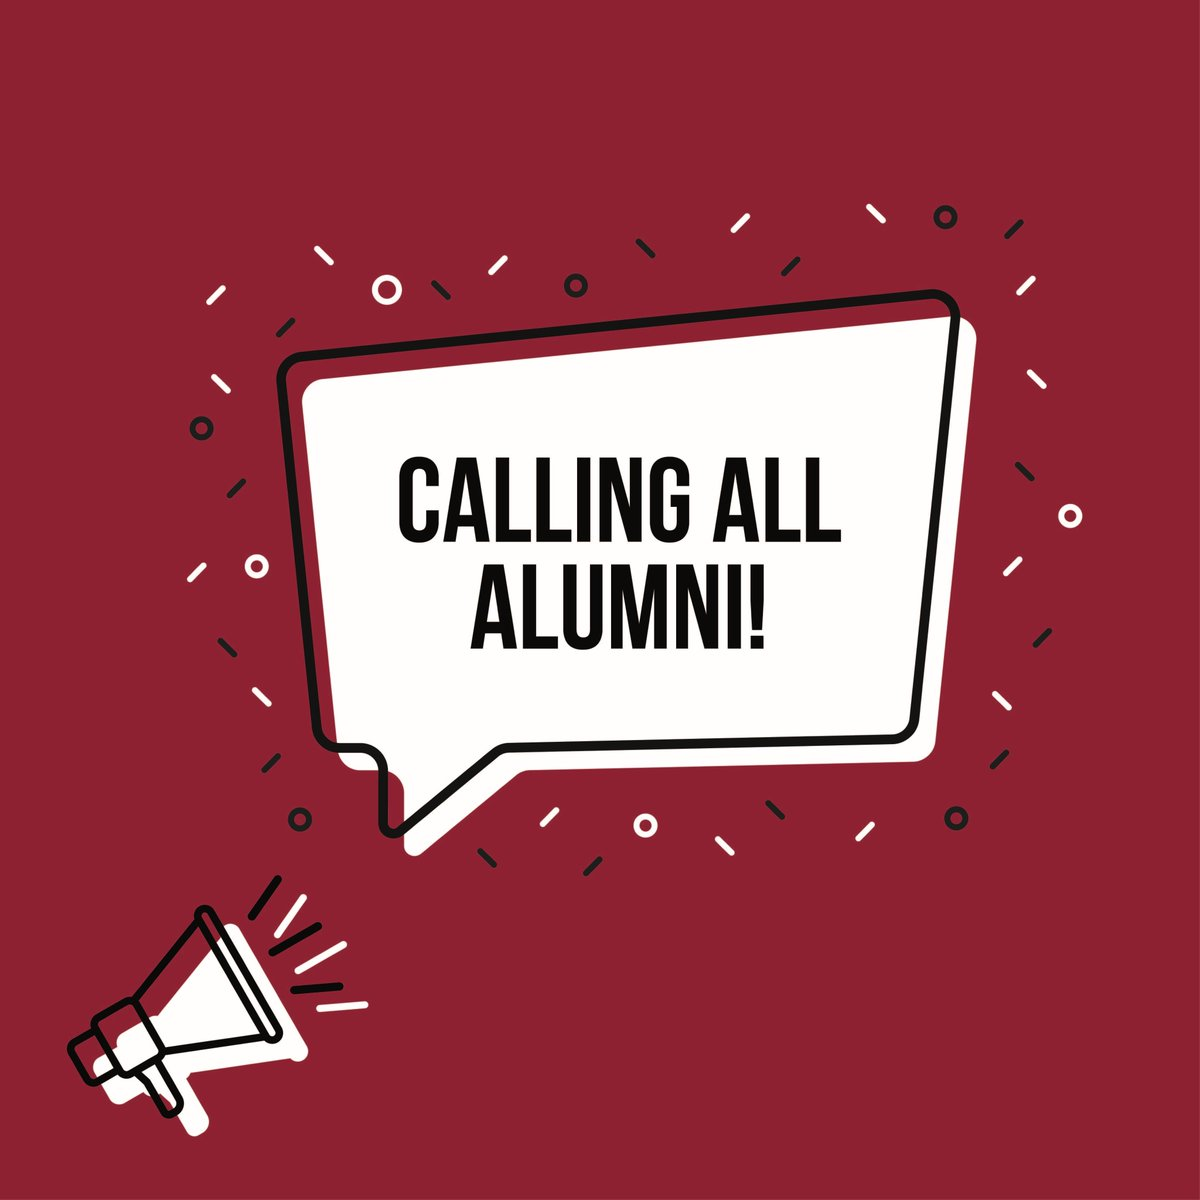 """University of Alabama National Alumni Association on Twitter: """"Have you  updated or confirmed your info for the upcoming alumni directory? If not,  we need to hear from you. Please call the University"""